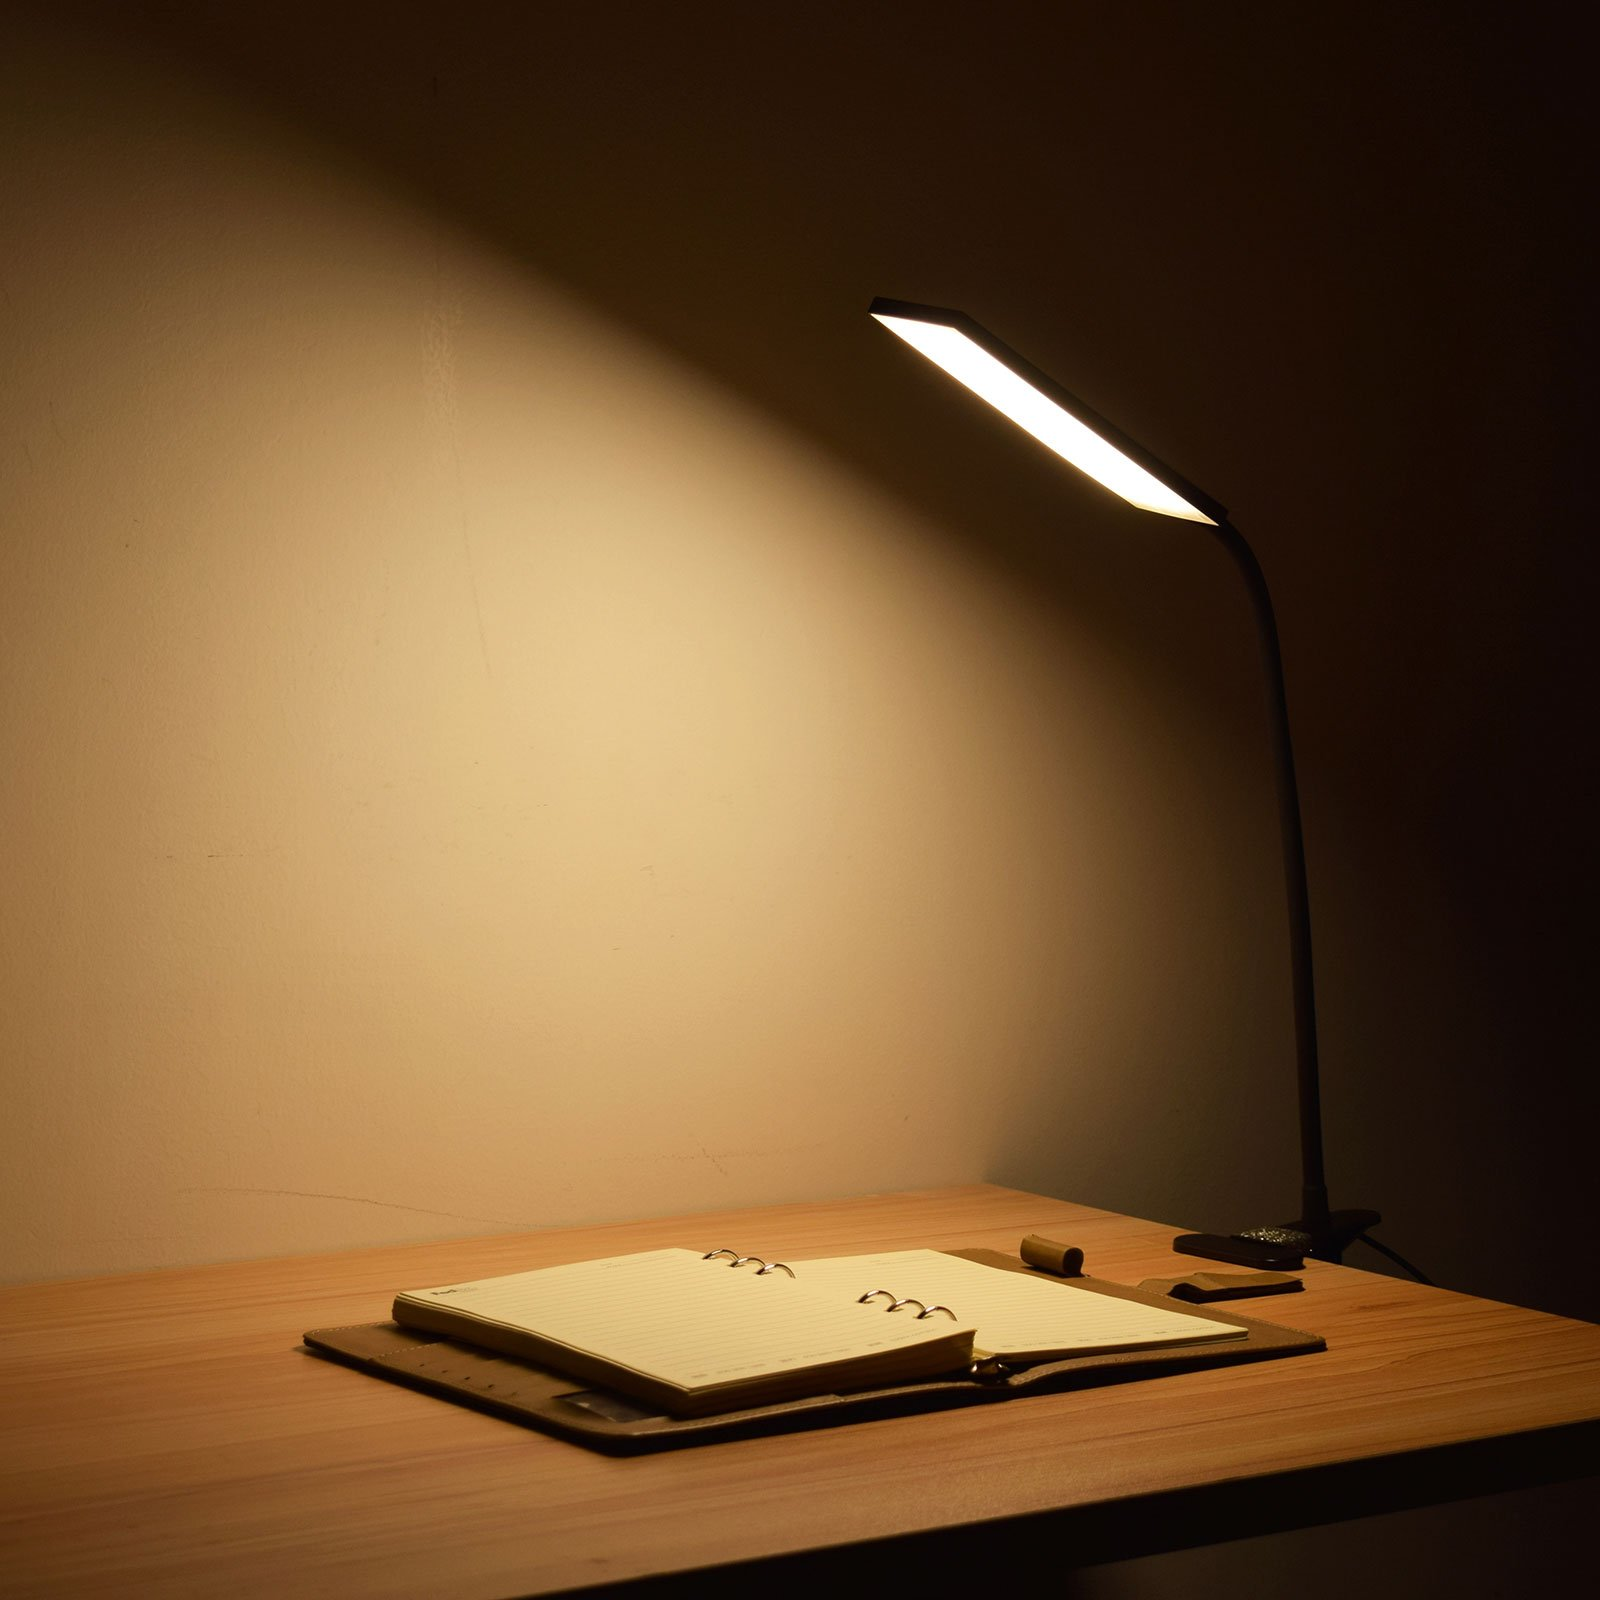 LED Desk Lamp, RAOYI Eye-Care Dimmable Flexible Gooseneck USB Table Lamp, 3 Color Temperatures, 14 Brightness Levels Clip Reading Lamp for Studying, Working, Black by RAOYI (Image #7)